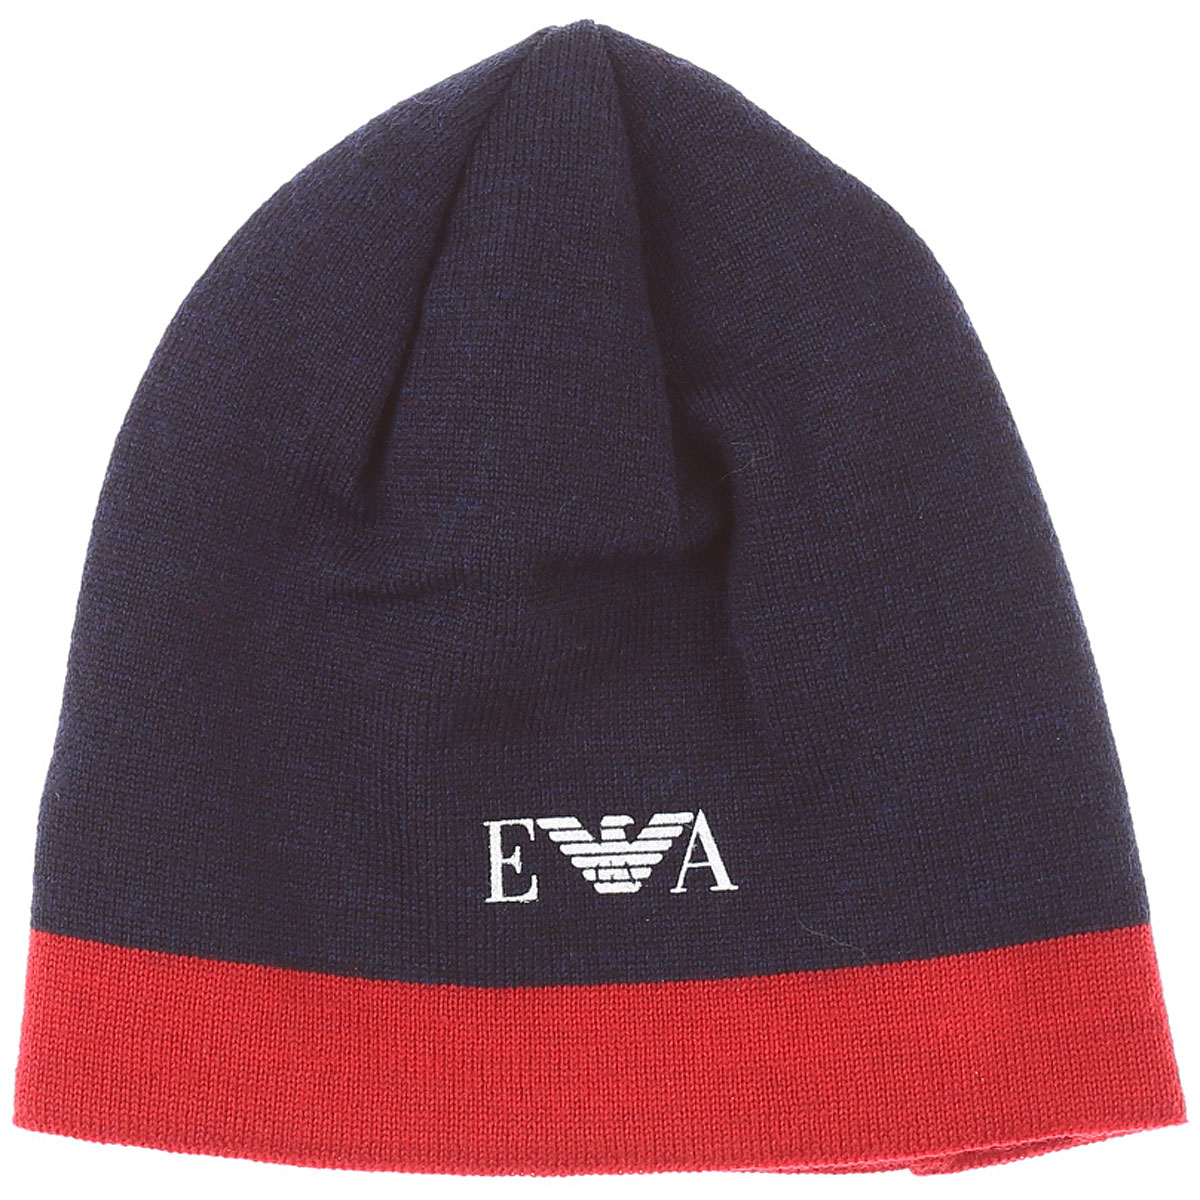 Emporio Armani Baby Hats for Boys On Sale, Blue, Wool, 2019, M S